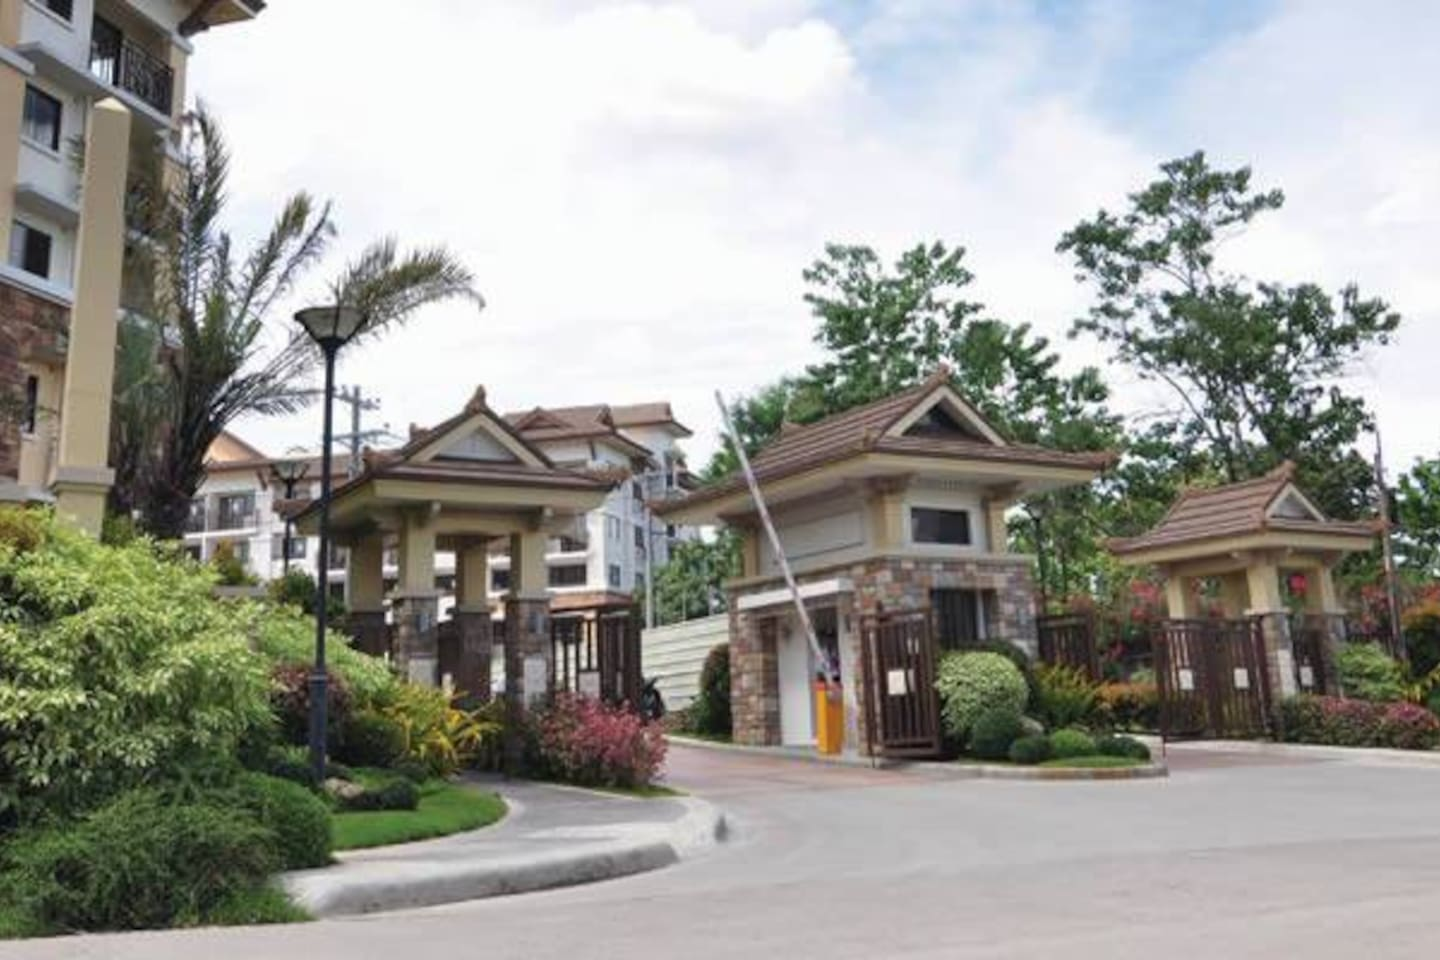 Entrance Gate to ONE OASIS Resort Condo buildings.. (with 24-hour guards on duty)